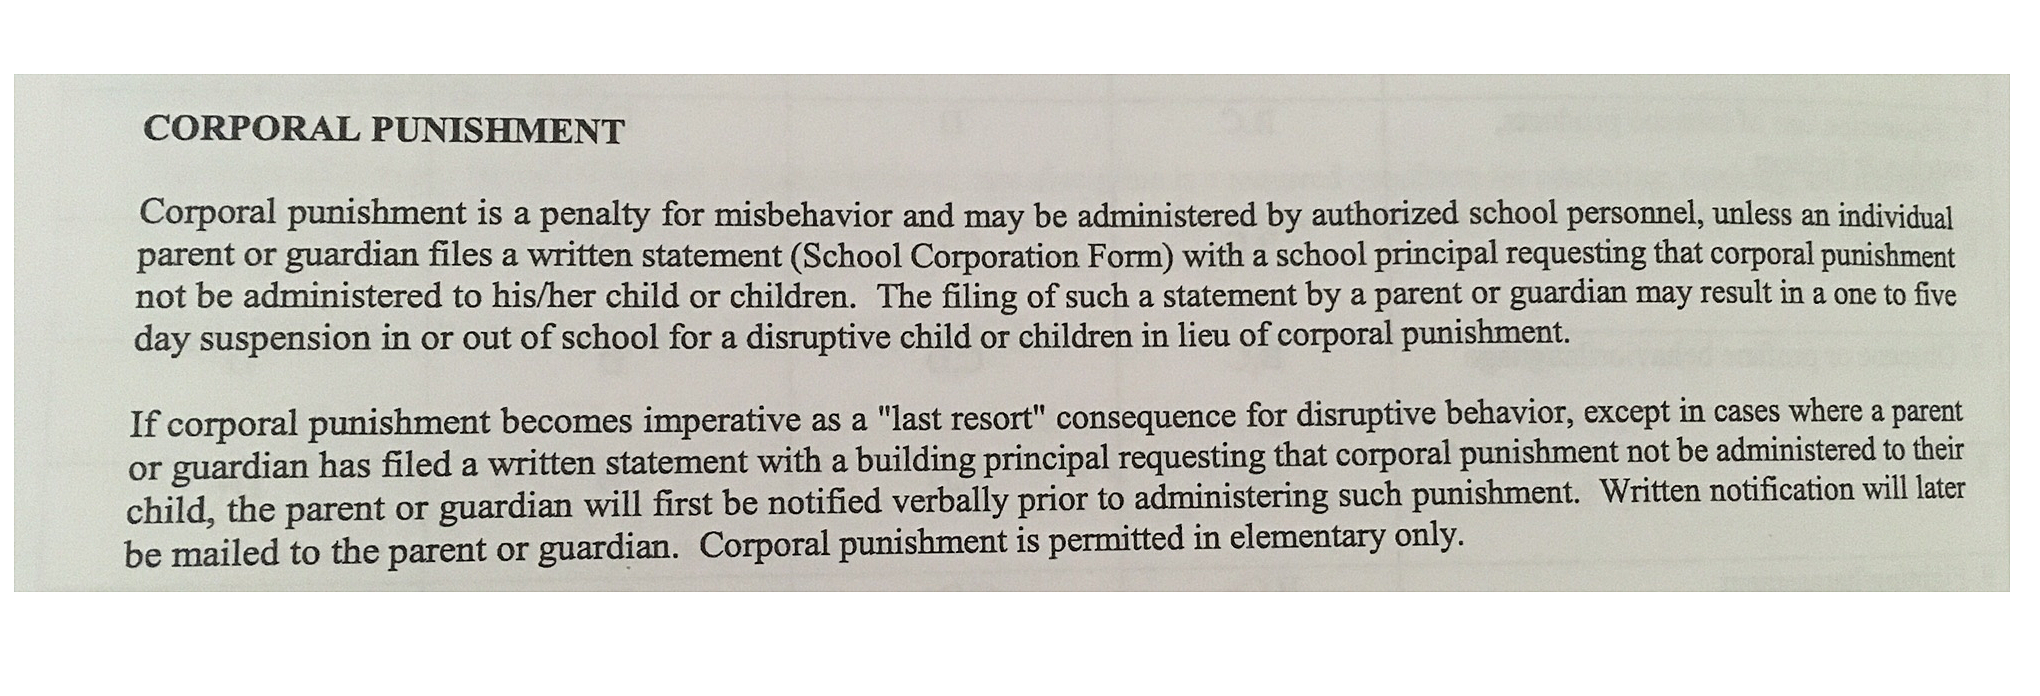 good things about corporal punishment